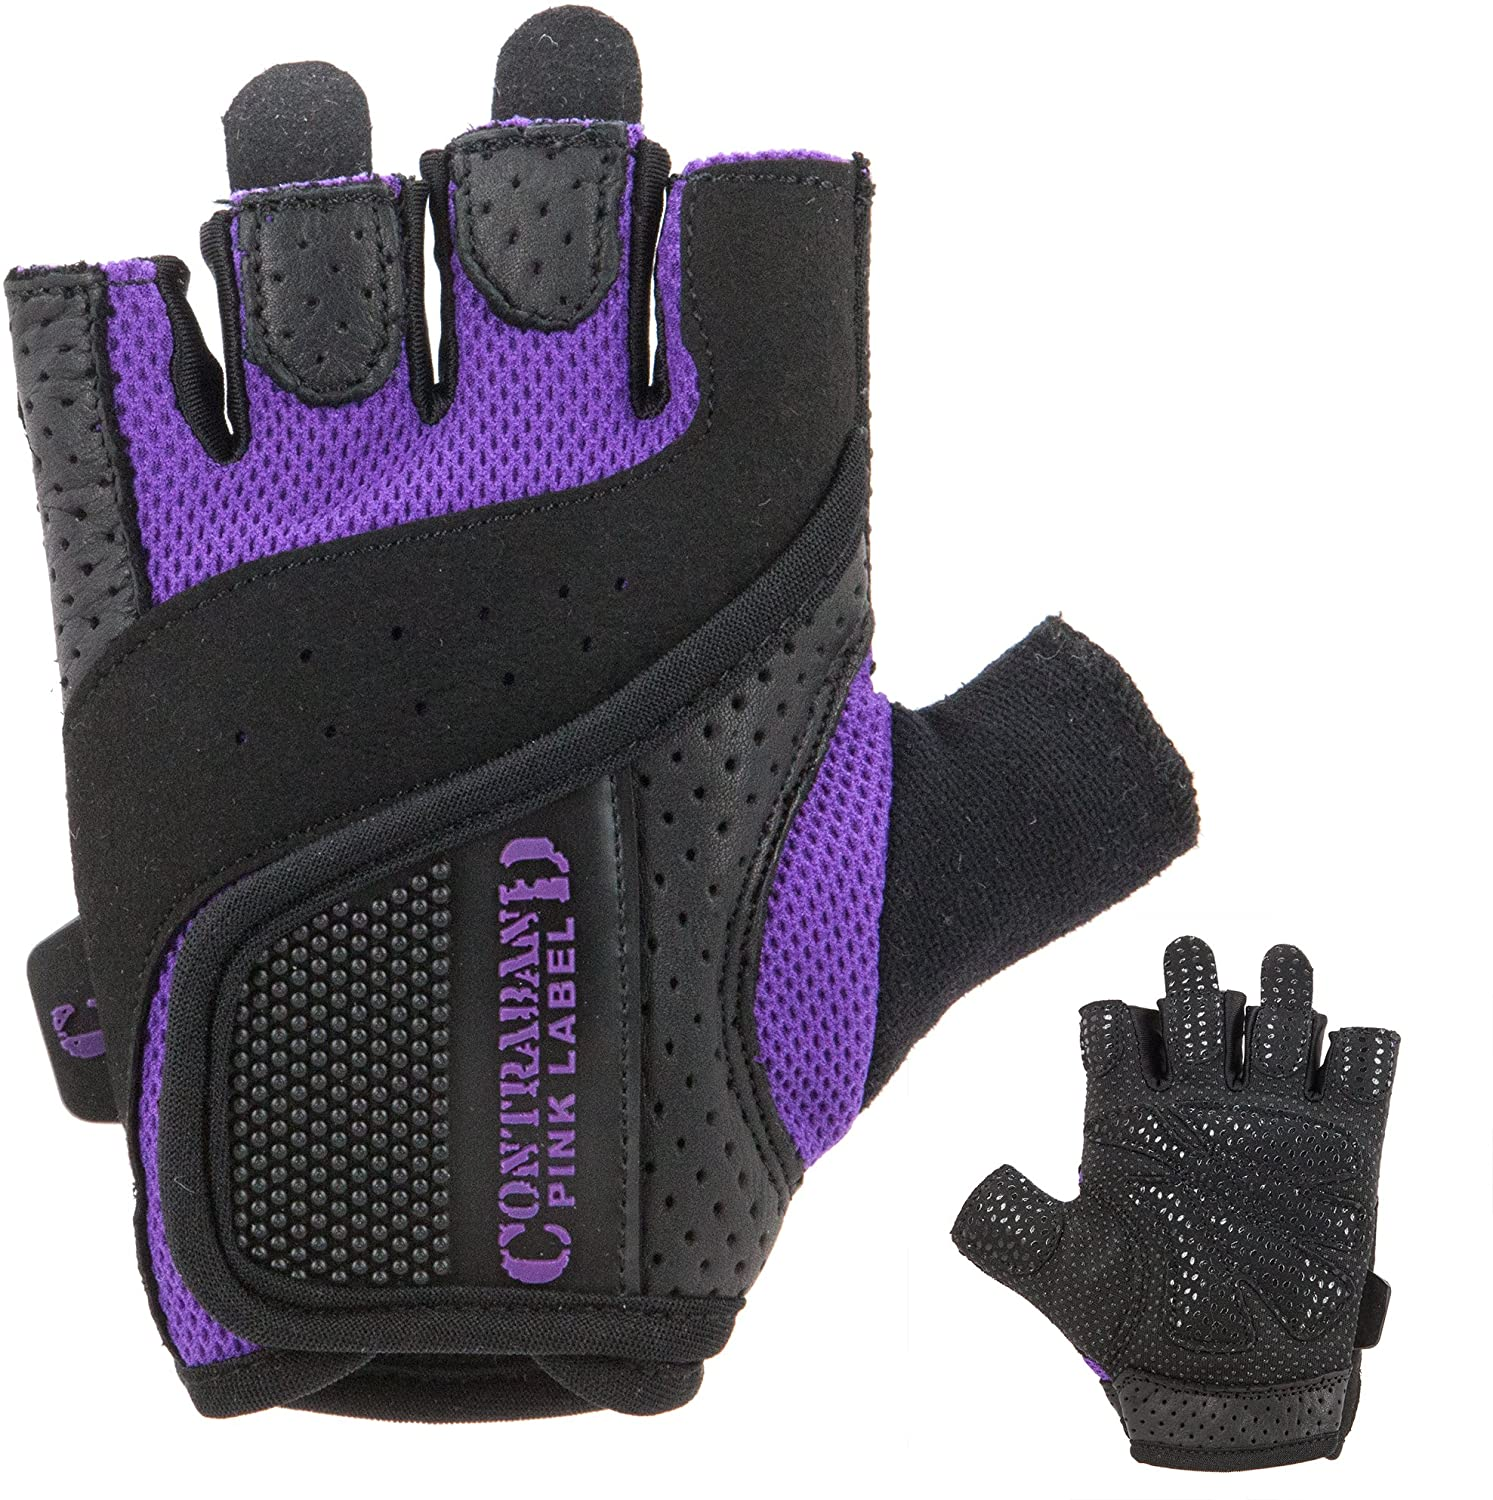 workout gloves women's contraband